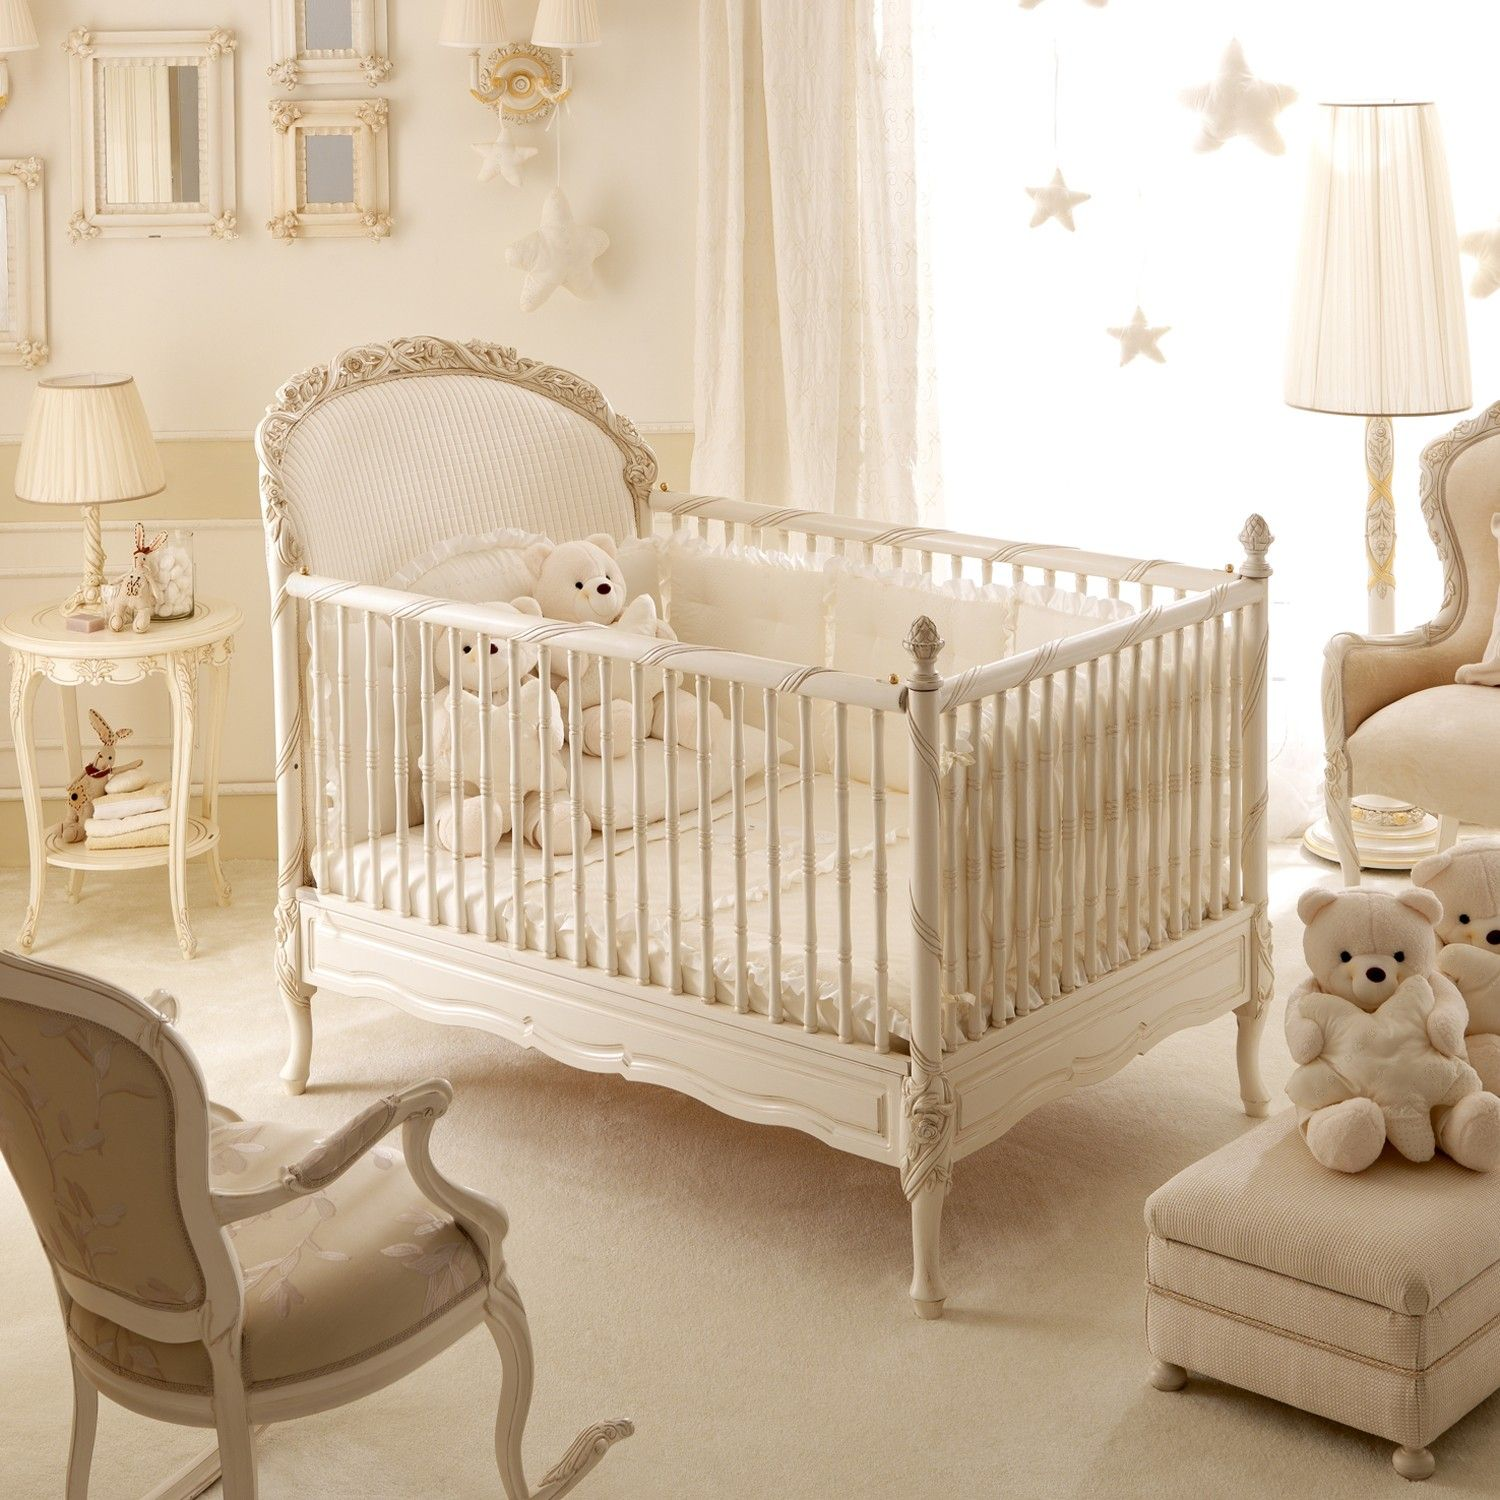 Baby cribs uae - Notte Fatata Crib Newborn Bedroom Furniture For Baby S Room Decor For Childrens